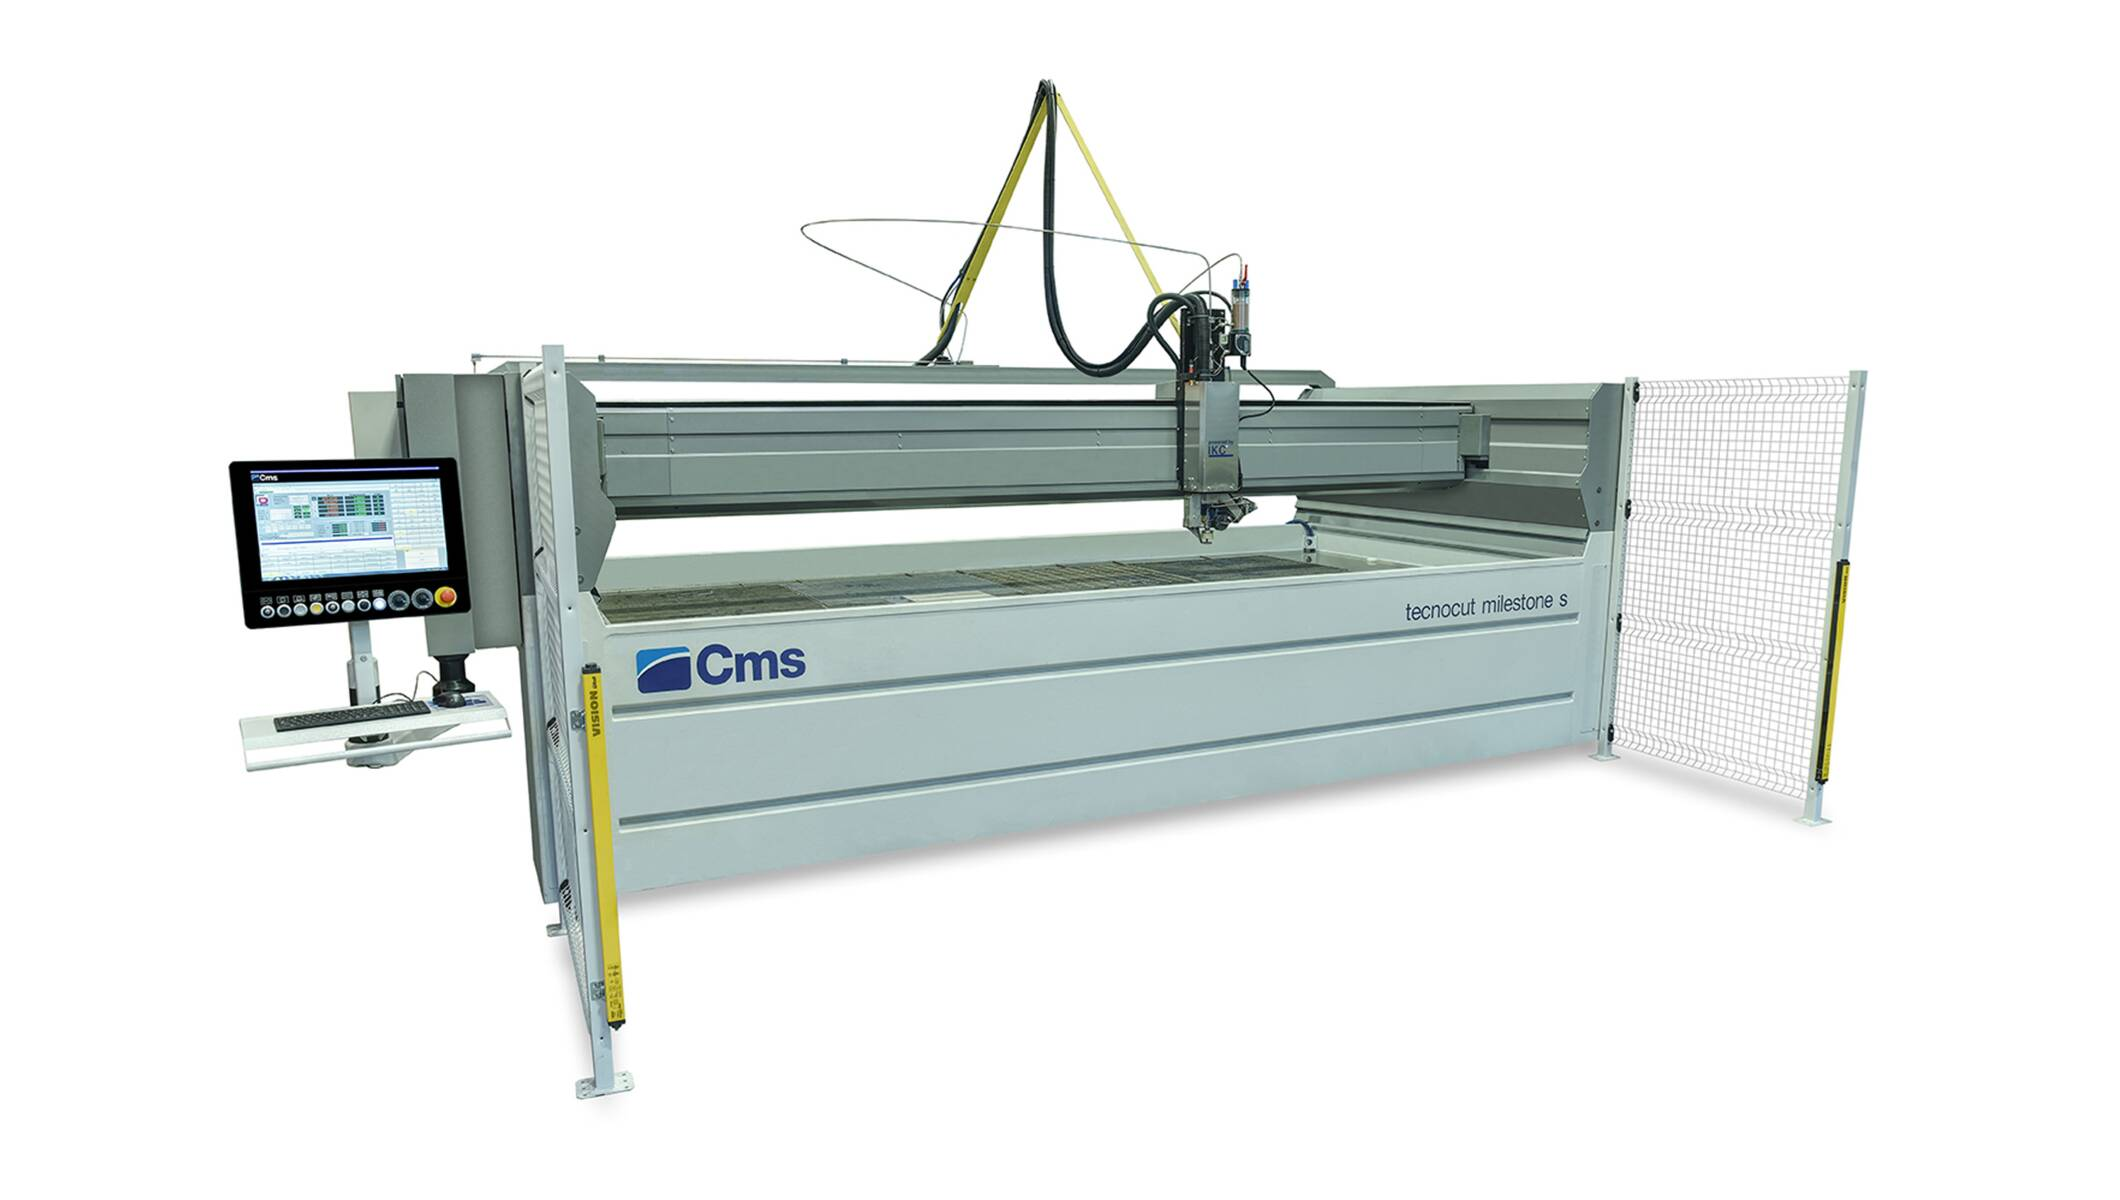 Complete waterjet systems - Waterjet cutting machines - tecnocut milestone s